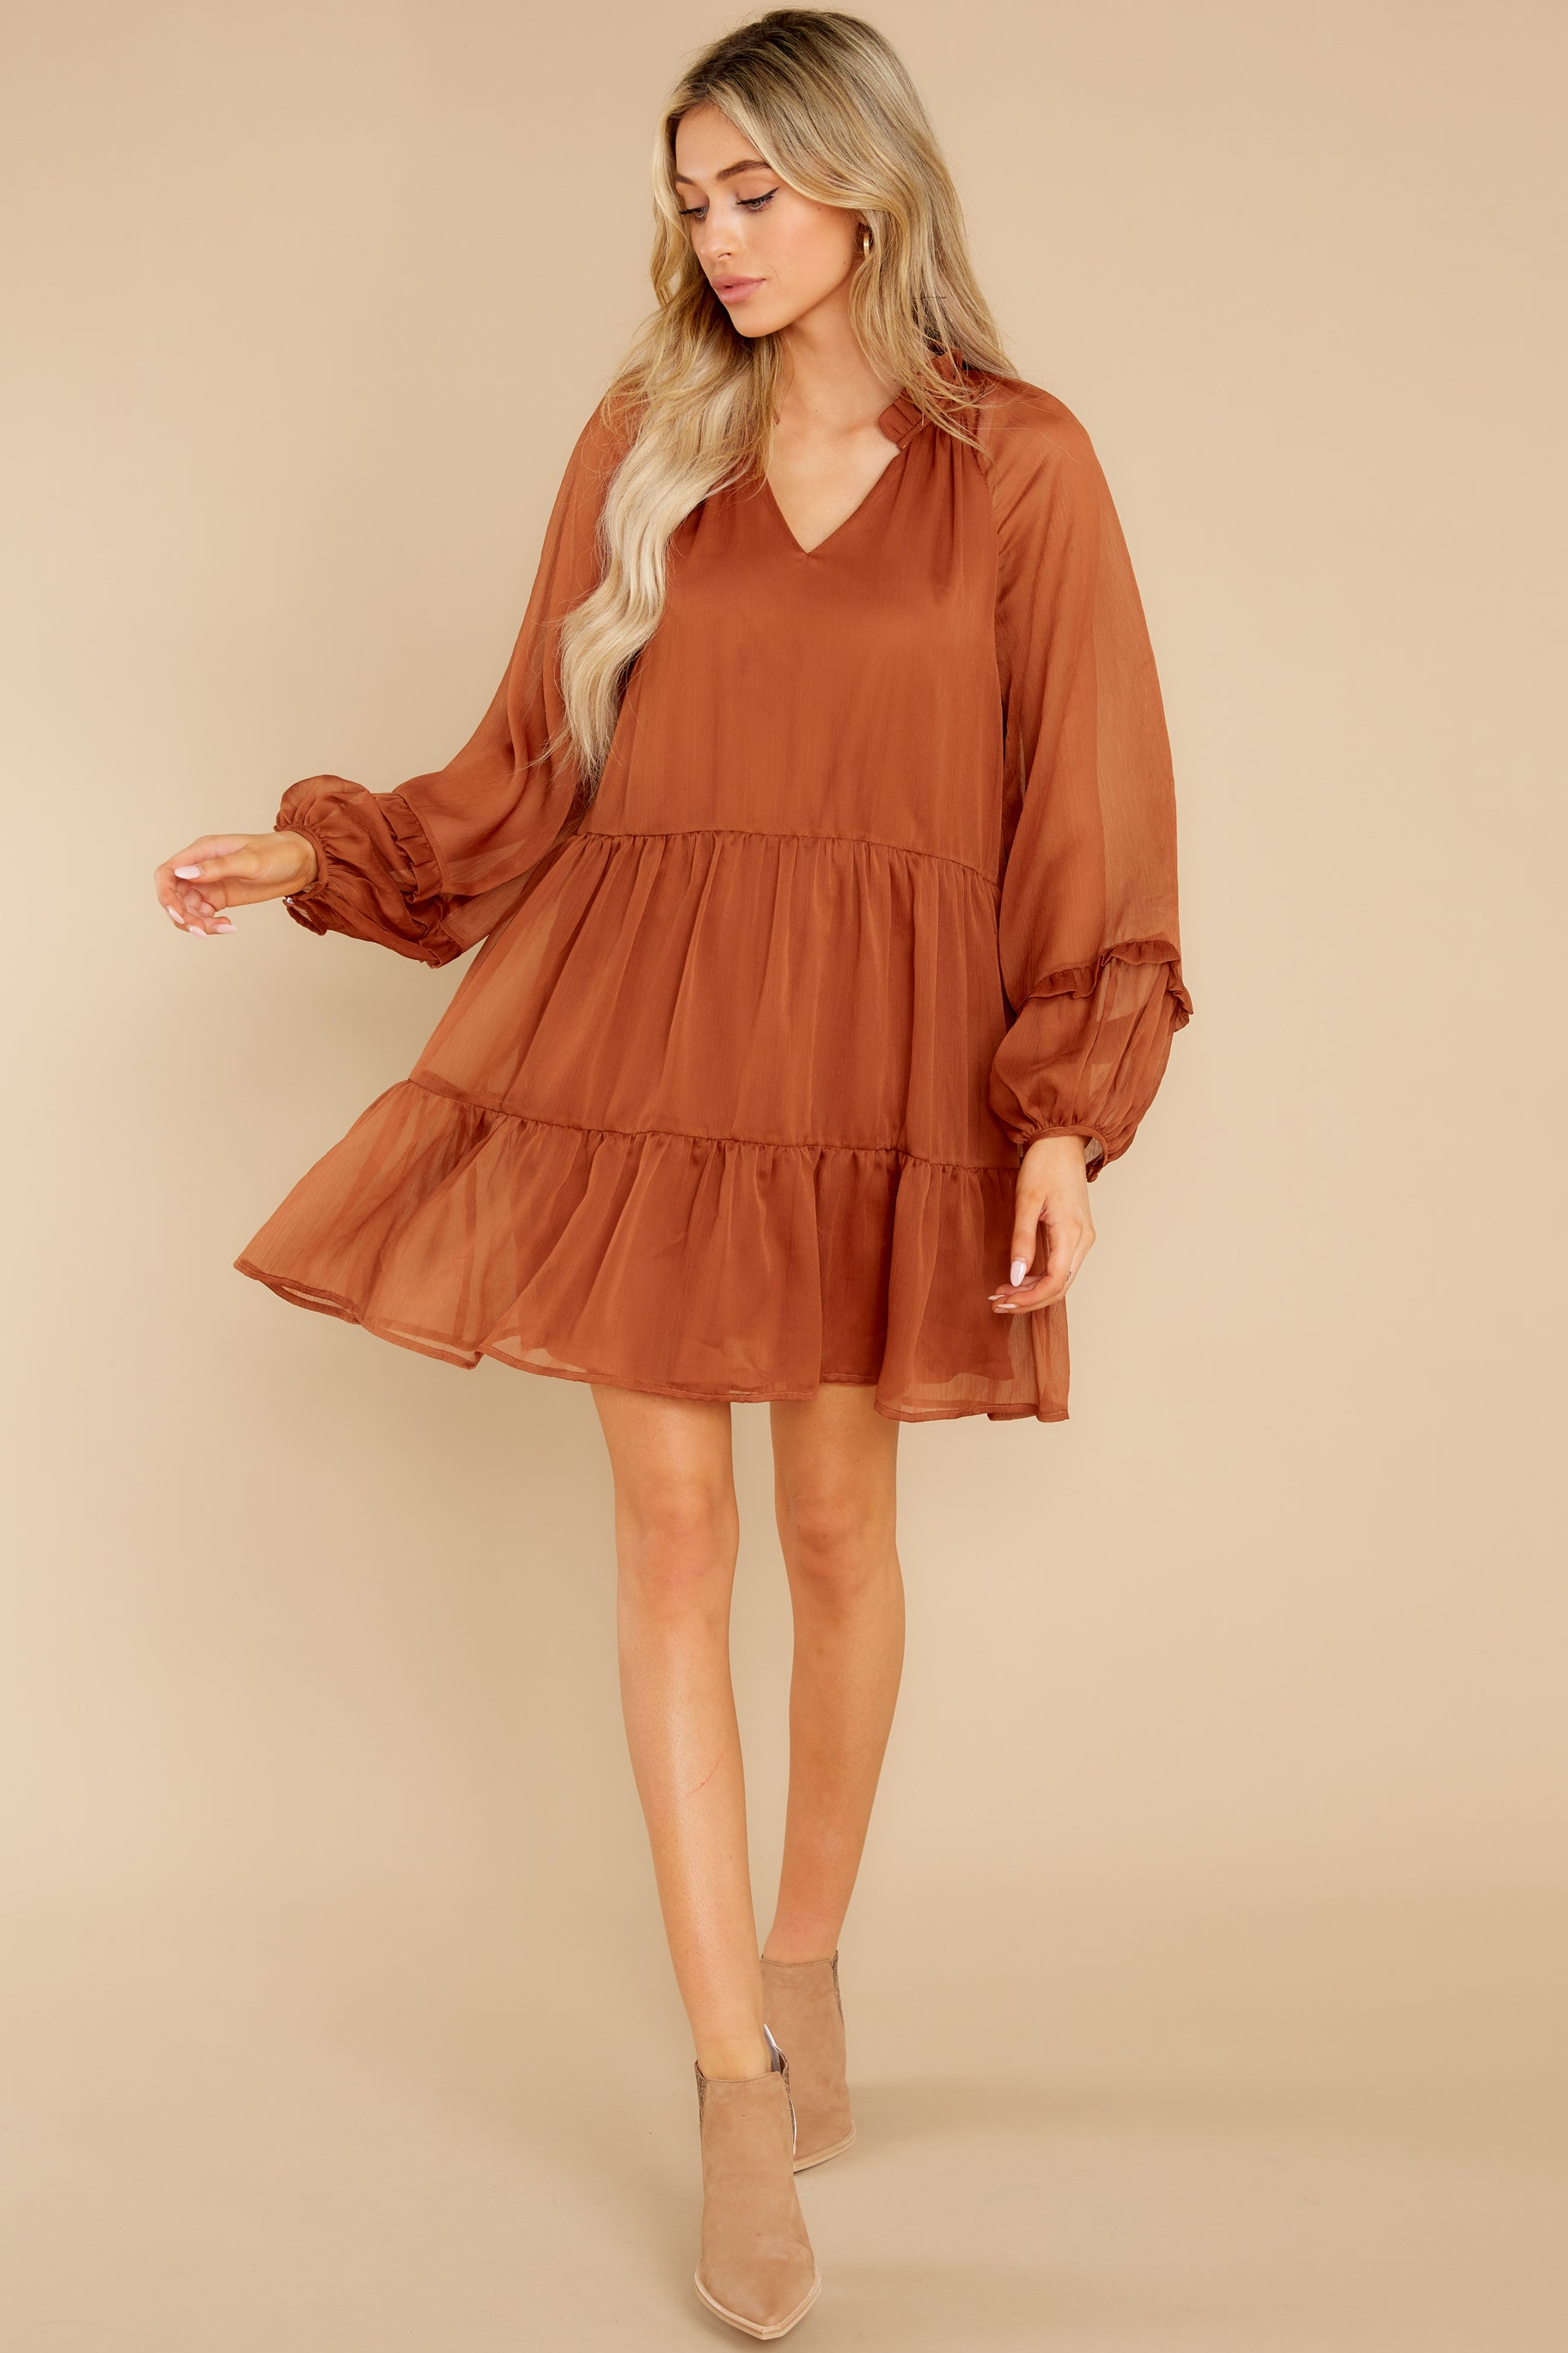 2 Dare To Remember Golden Brown Dress at reddress.com